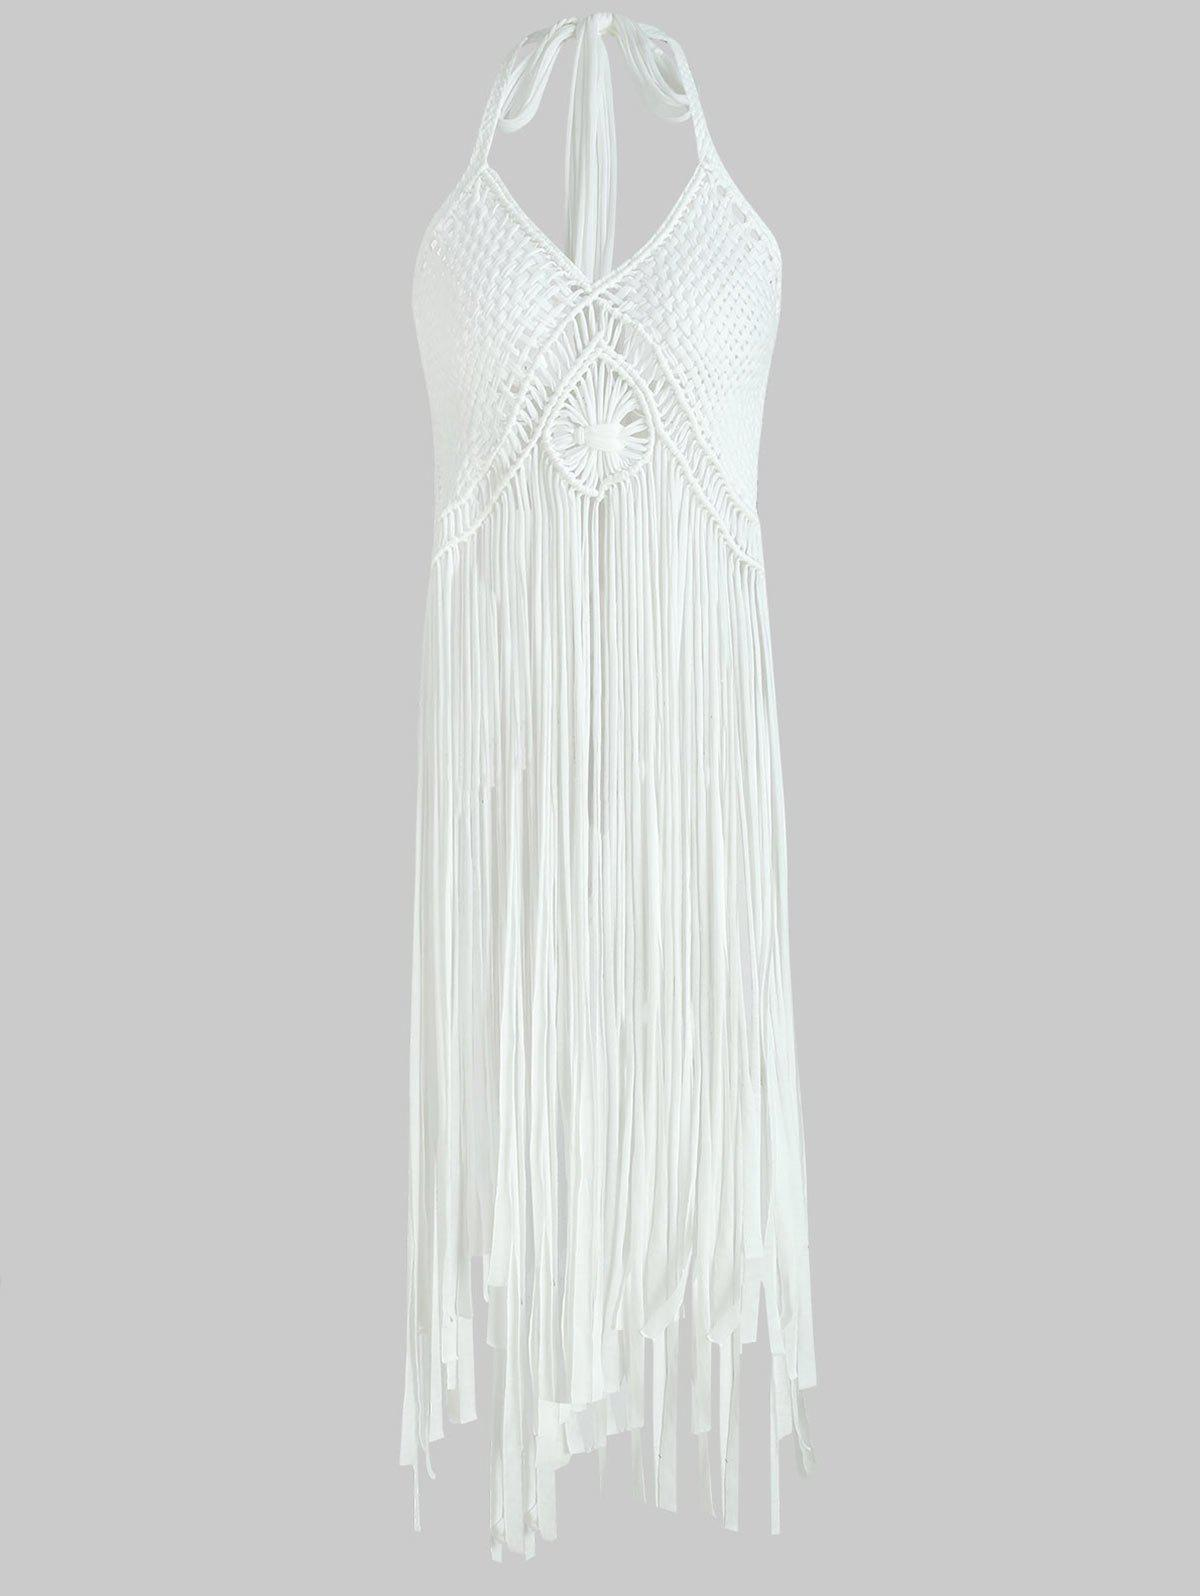 Buy Fringe Halter Crochet Tank Top